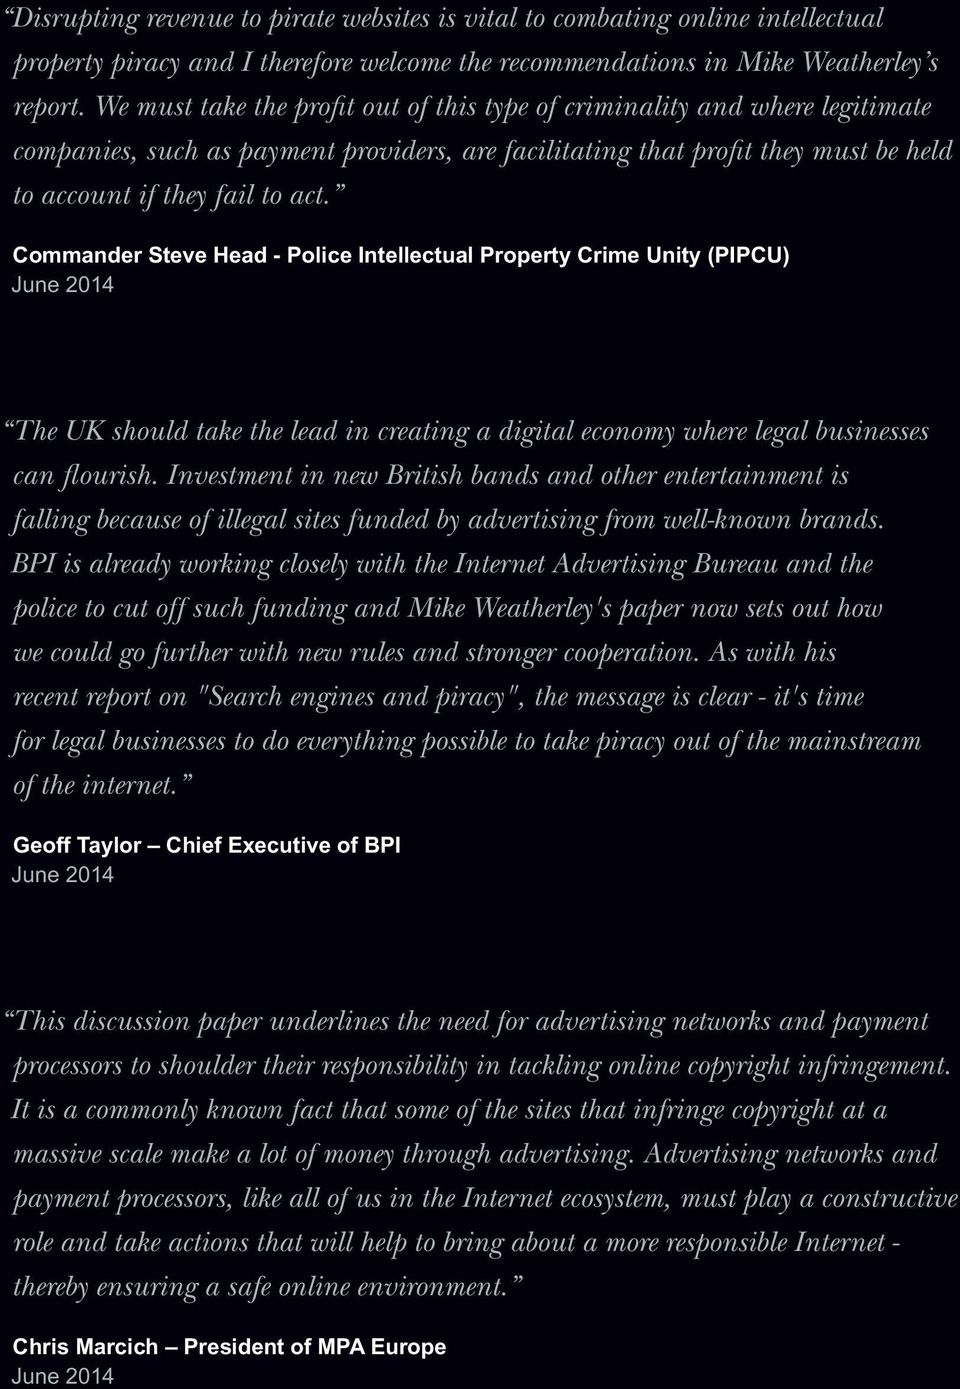 Commander Steve Head - Police Intellectual Property Crime Unity (PIPCU) June 2014 The UK should take the lead in creating a digital economy where legal businesses can flourish.